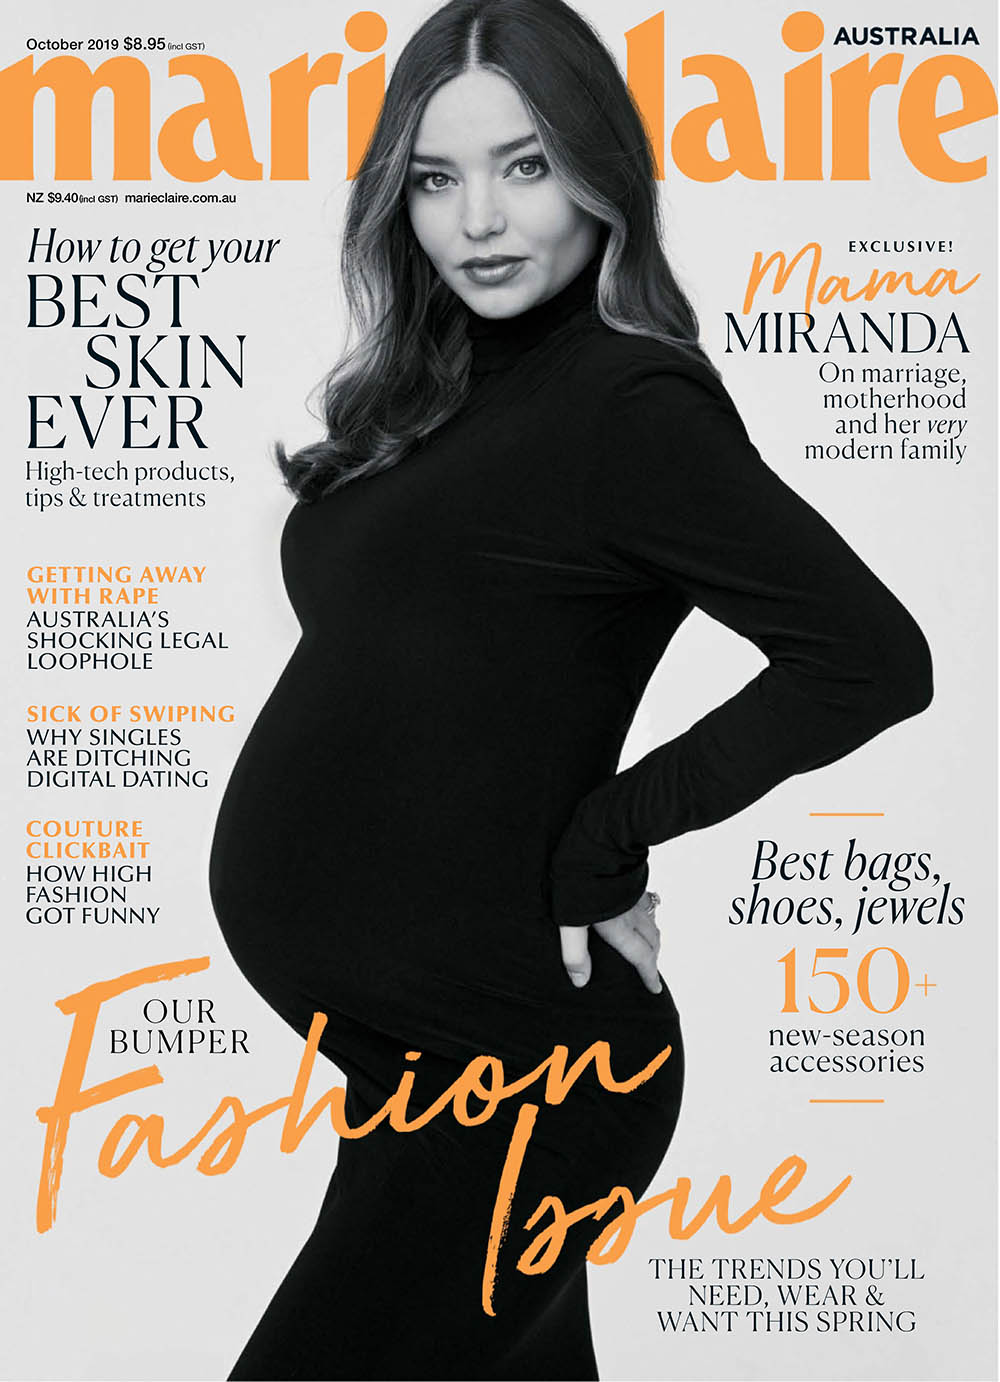 Miranda Kerr covers Marie Claire Australia October 2019 by Nino Munoz